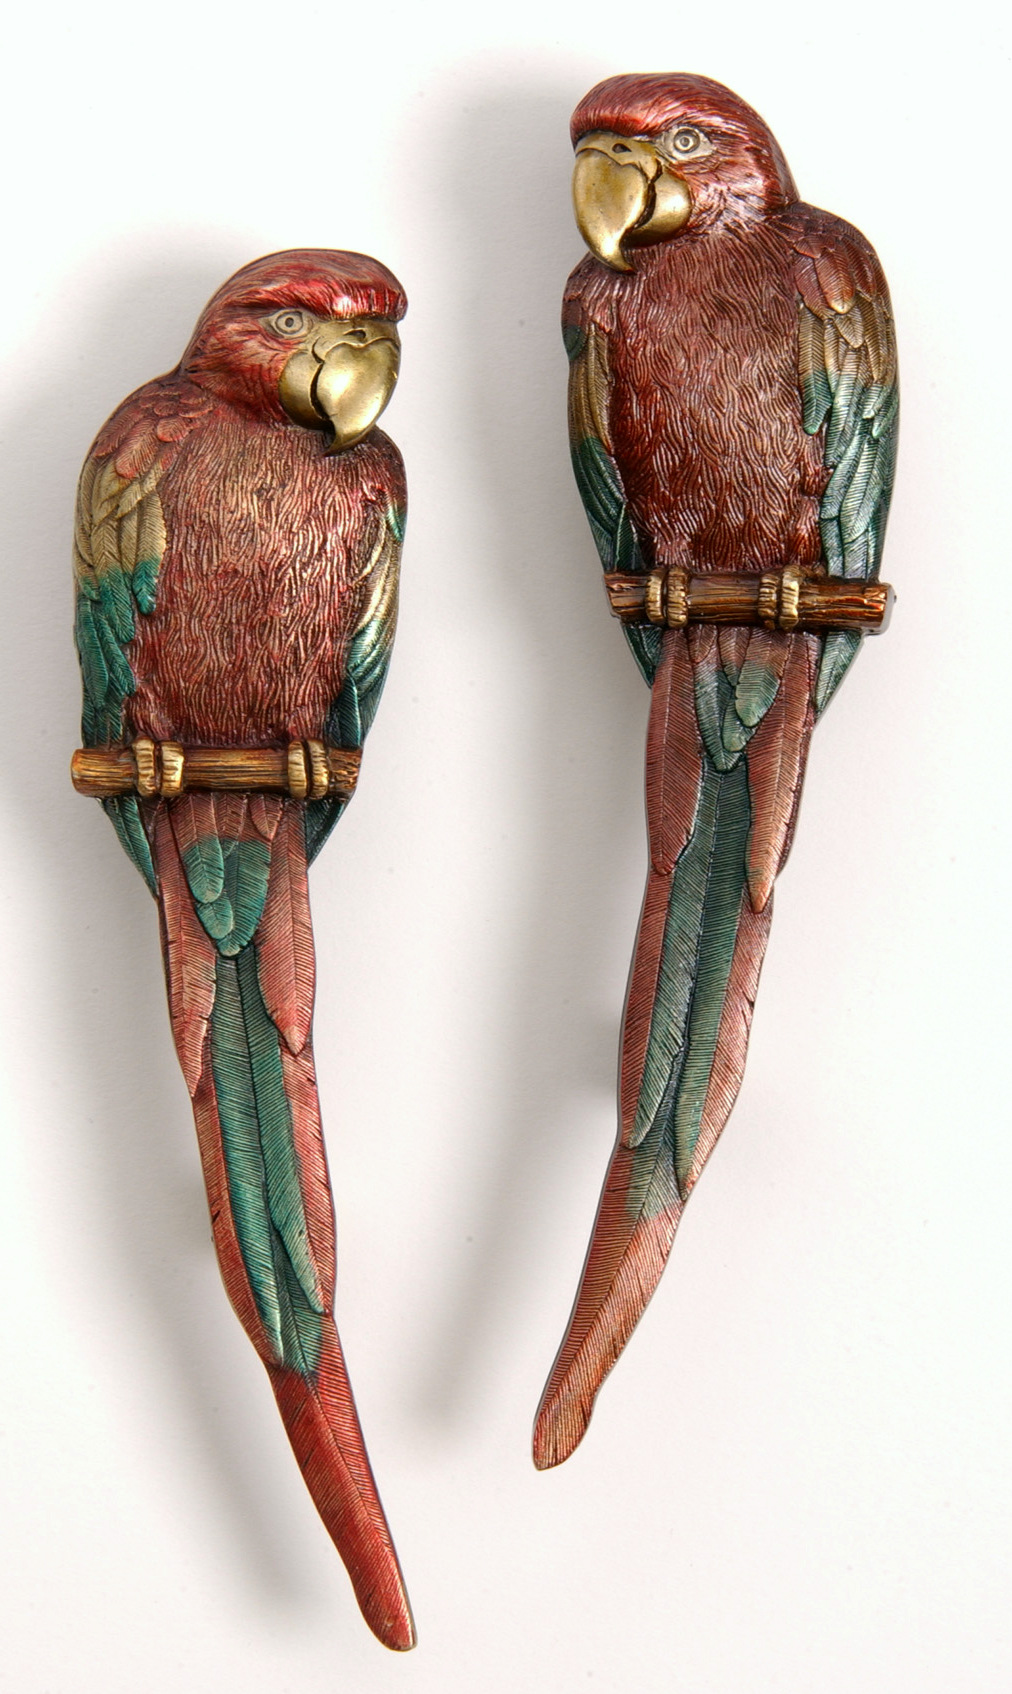 Hand Painted Macaw Pulls NHP-329-BHT-Left, NHP-329-BHT-Right Notting Hill Decorative Hardware.JPG